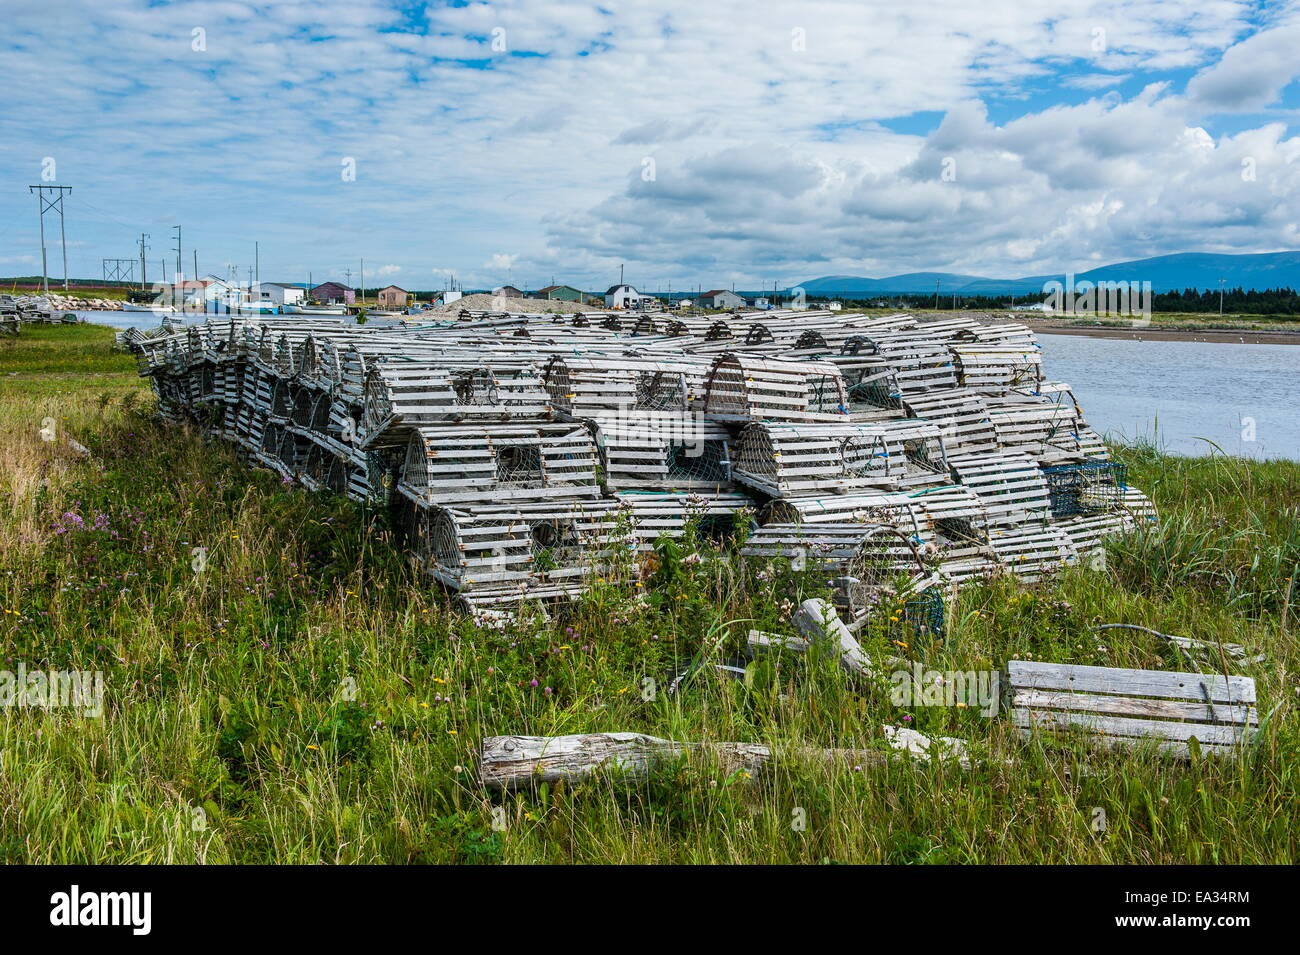 Lobster fishing traps in Port au Choix, Newfoundland, Canada, North America - Stock Image